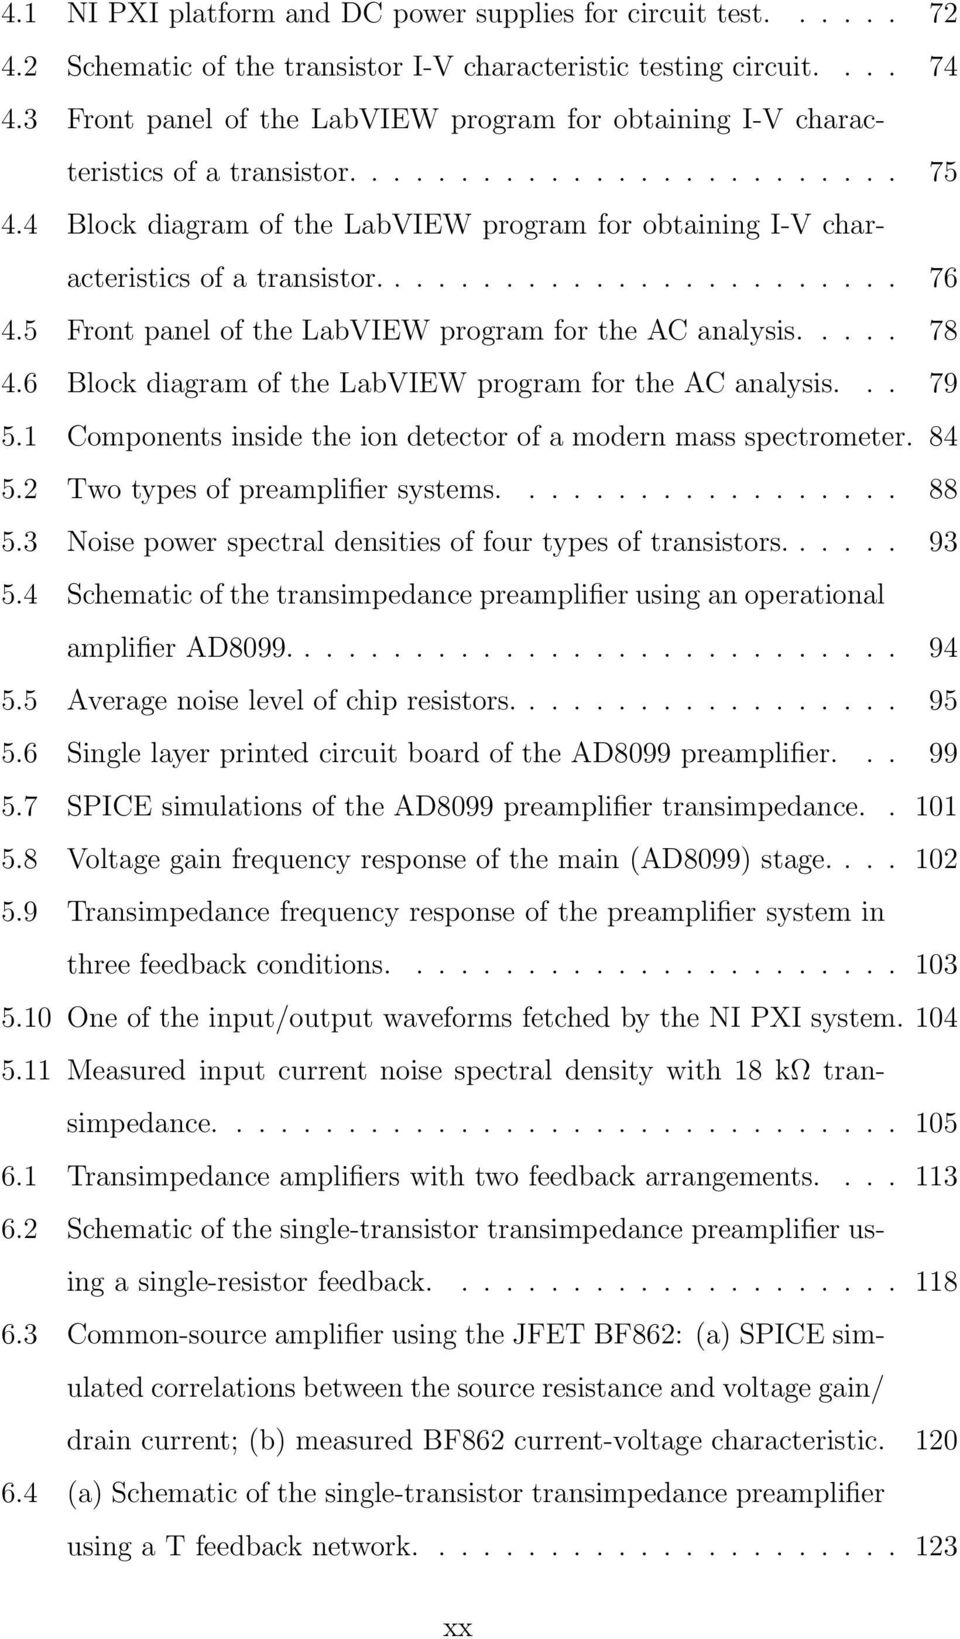 Advanced Electronics For Fourier Transform Ion Cyclotron Resonance Ic Lf351electromagnetic Field Sensor Free Electronic Circuit 4 Block Diagram Of The Labview Program Obtaining I V Characteristics A Transistor